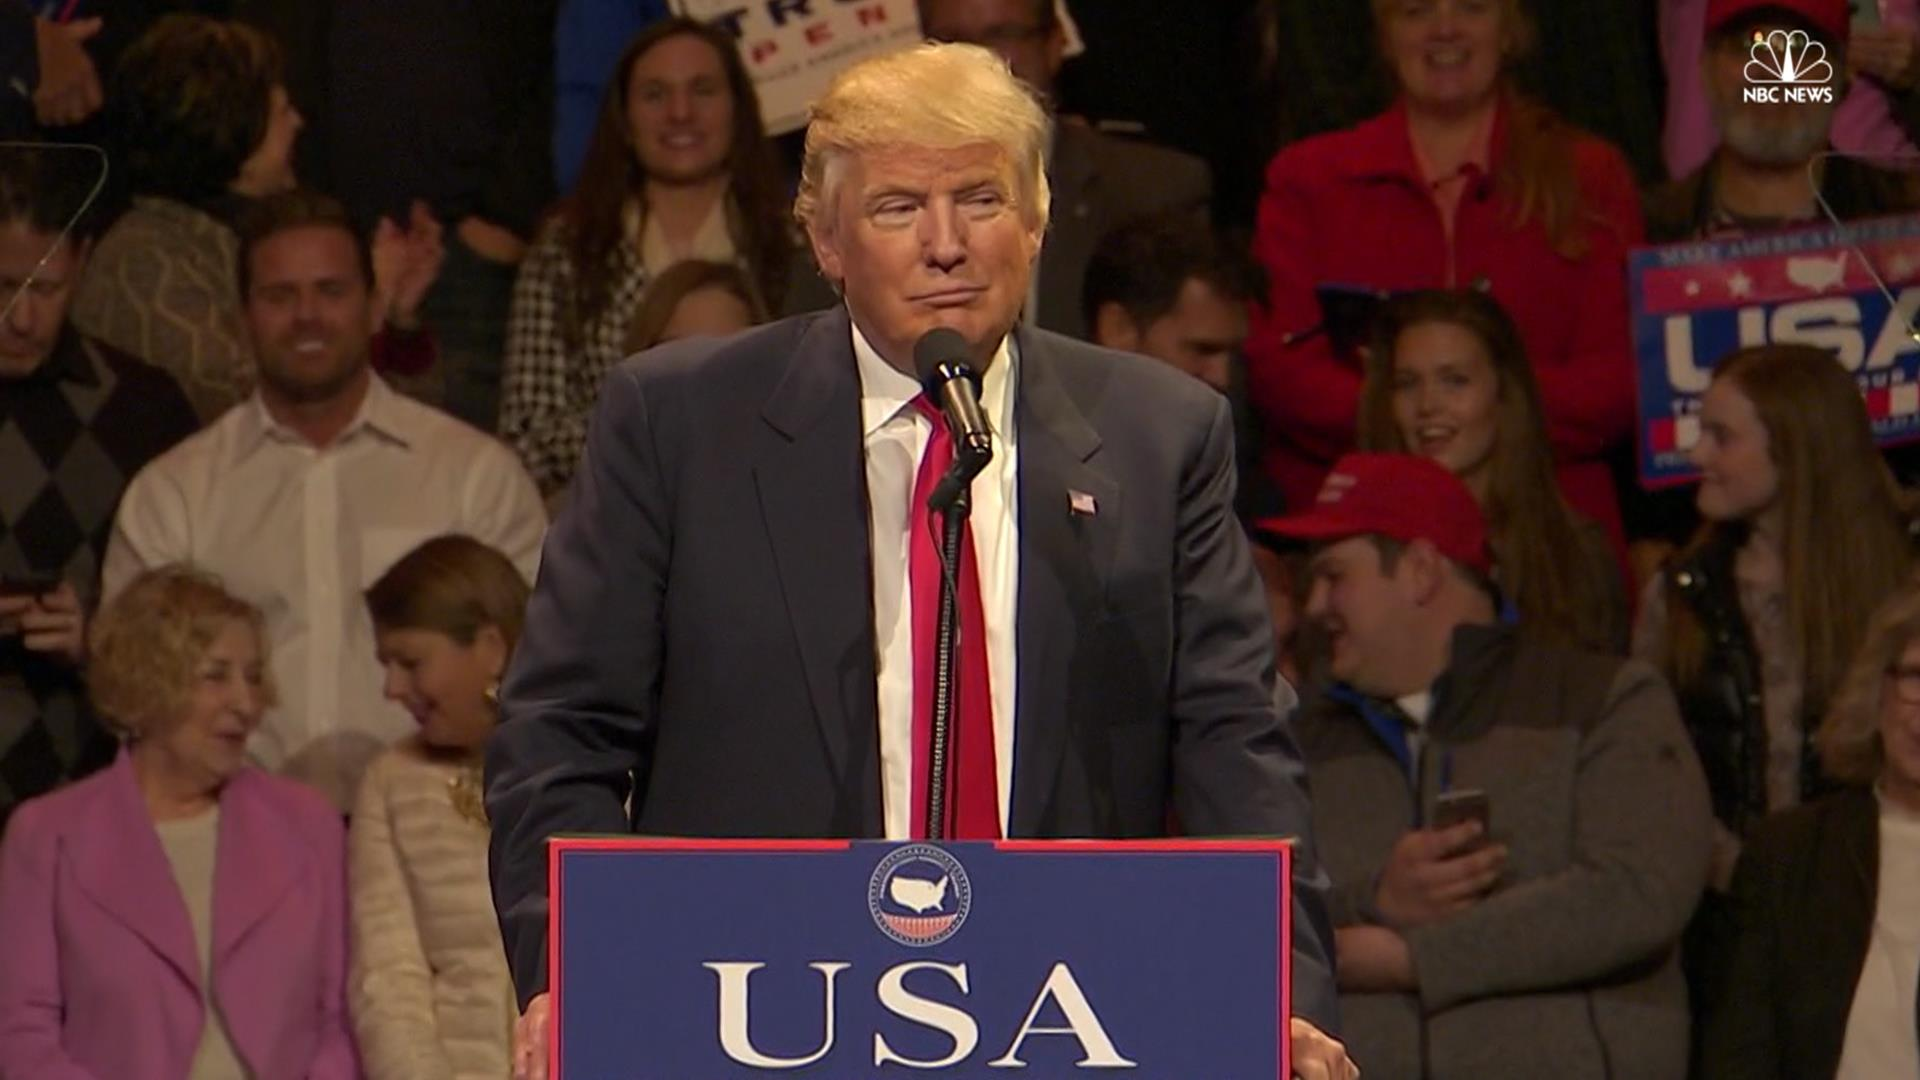 Trump Pledges America First In Speech On Victory Tour